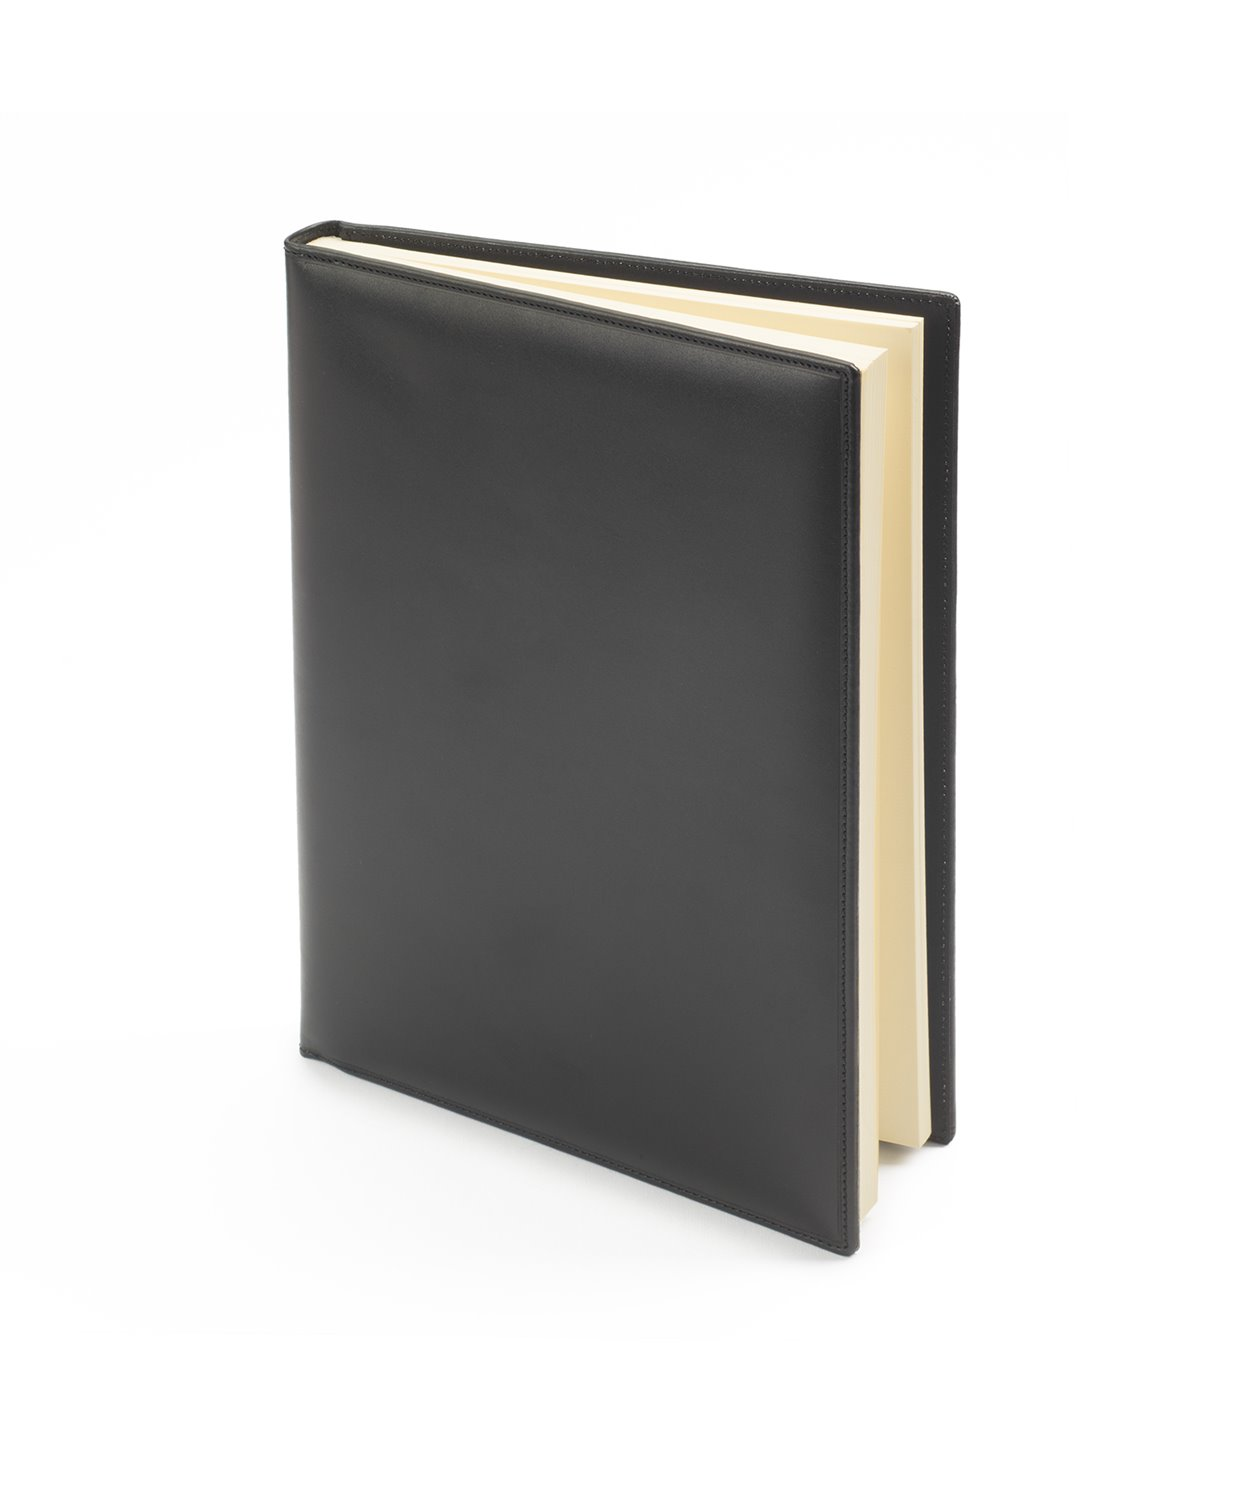 Palmgrens - Gästbok Svart - Genuine handcrafted leather since 1896 71f7ffec0c05a